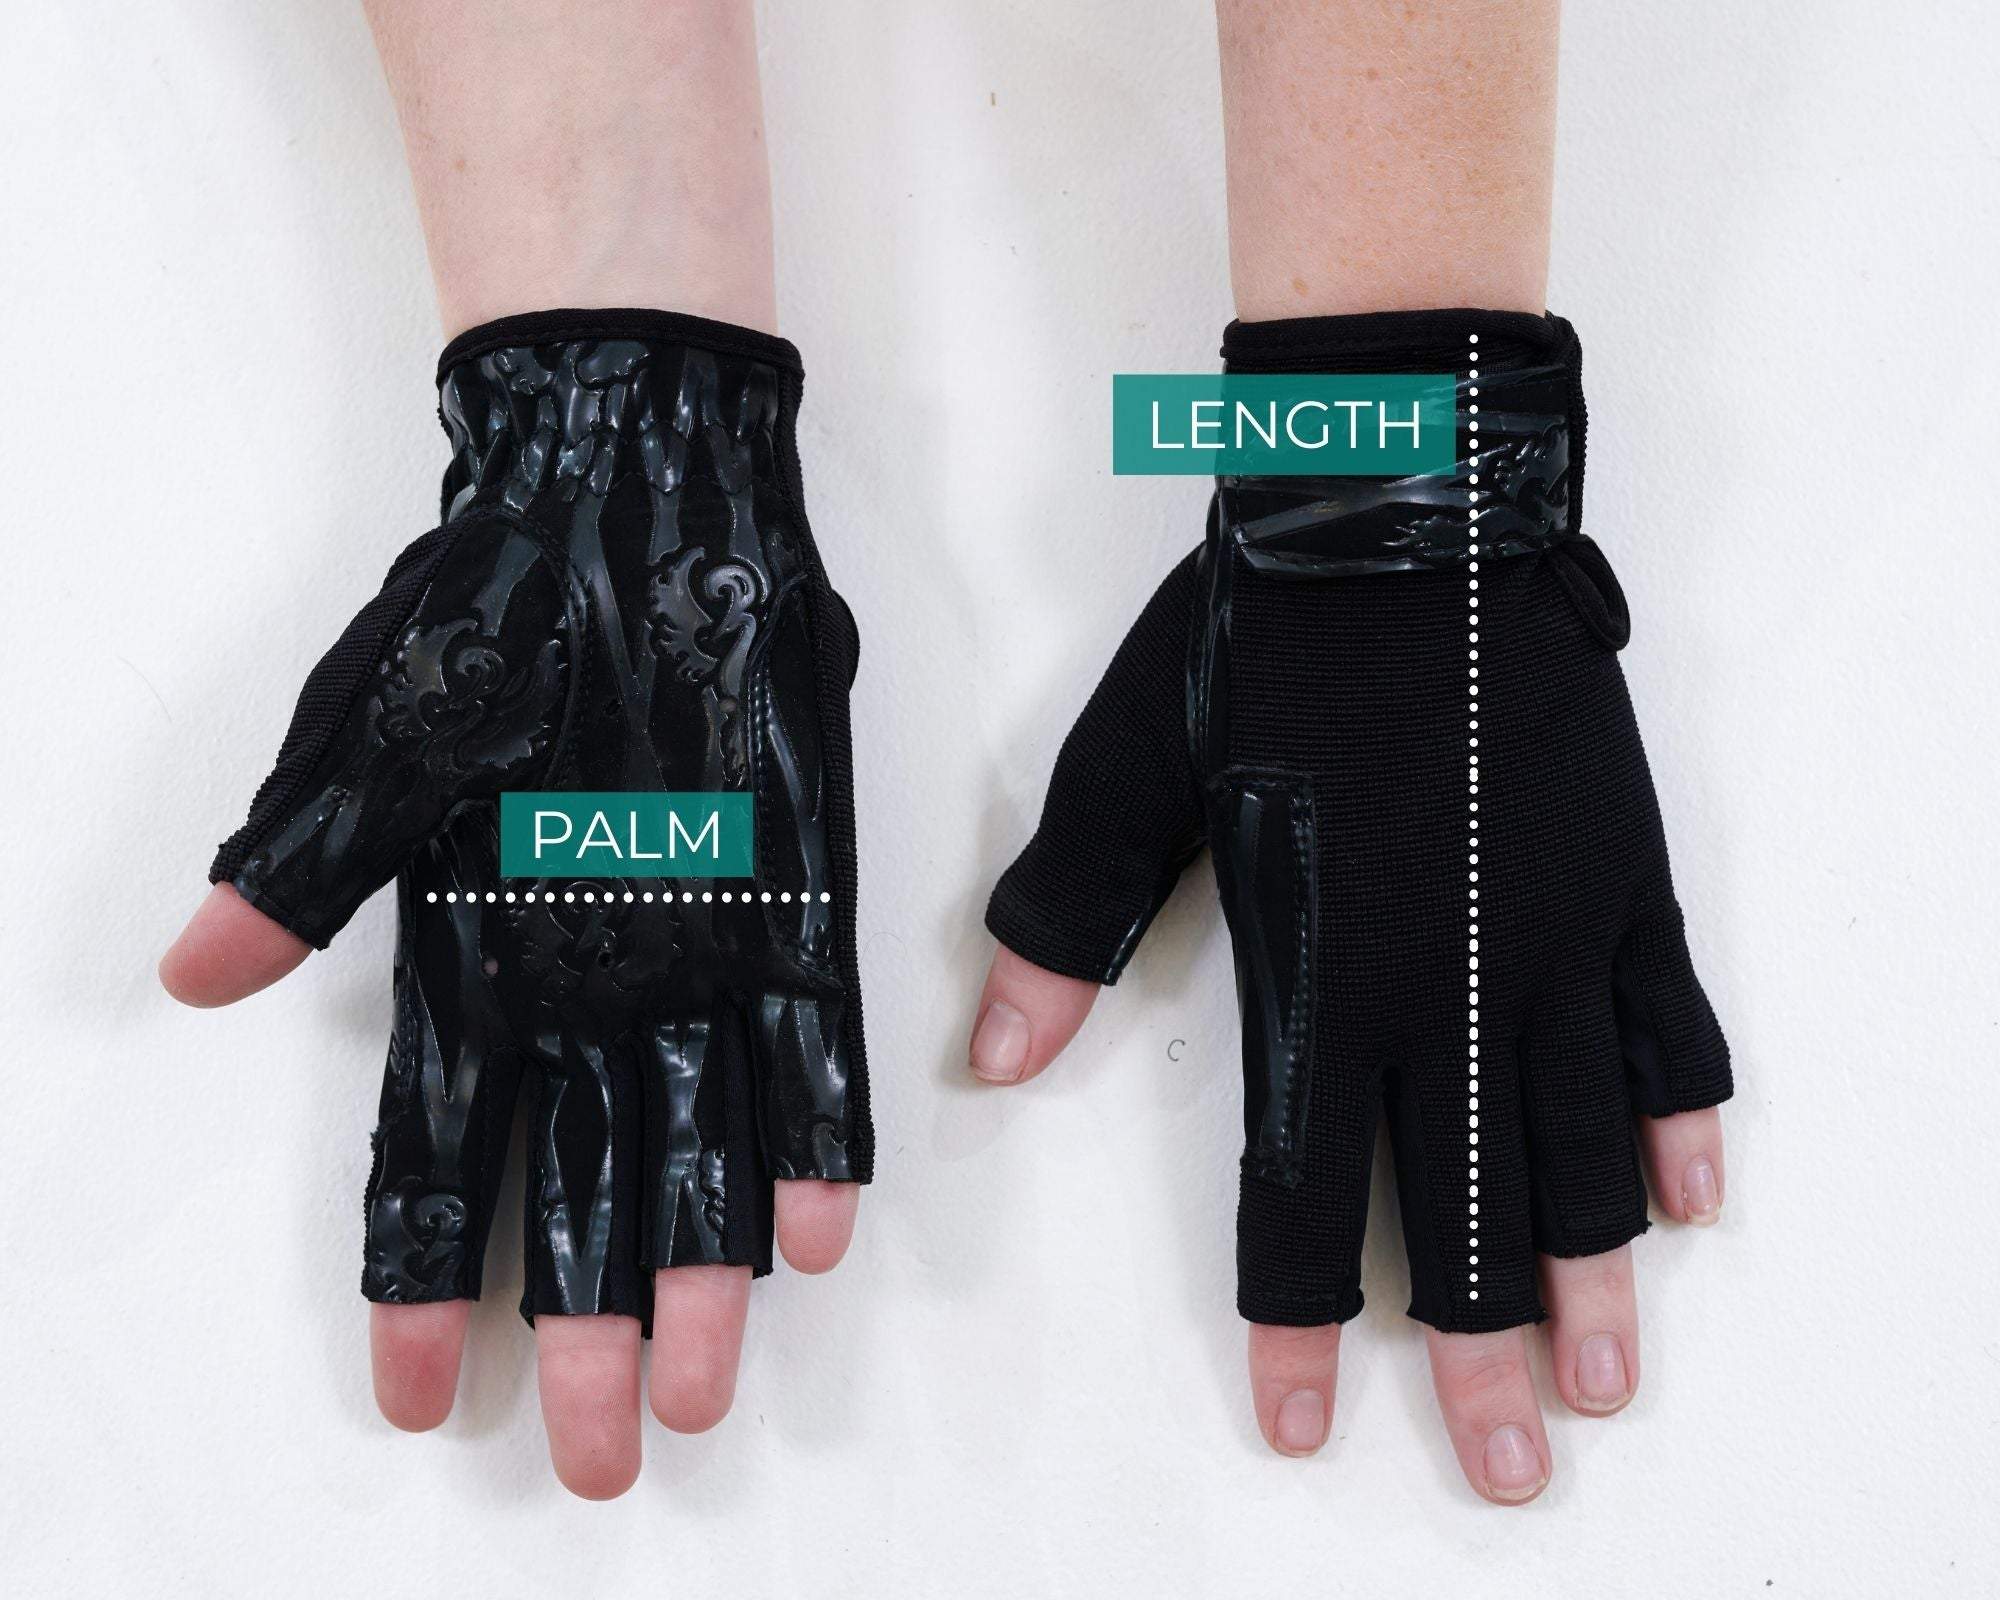 Sticky Gloves Measurement Guide